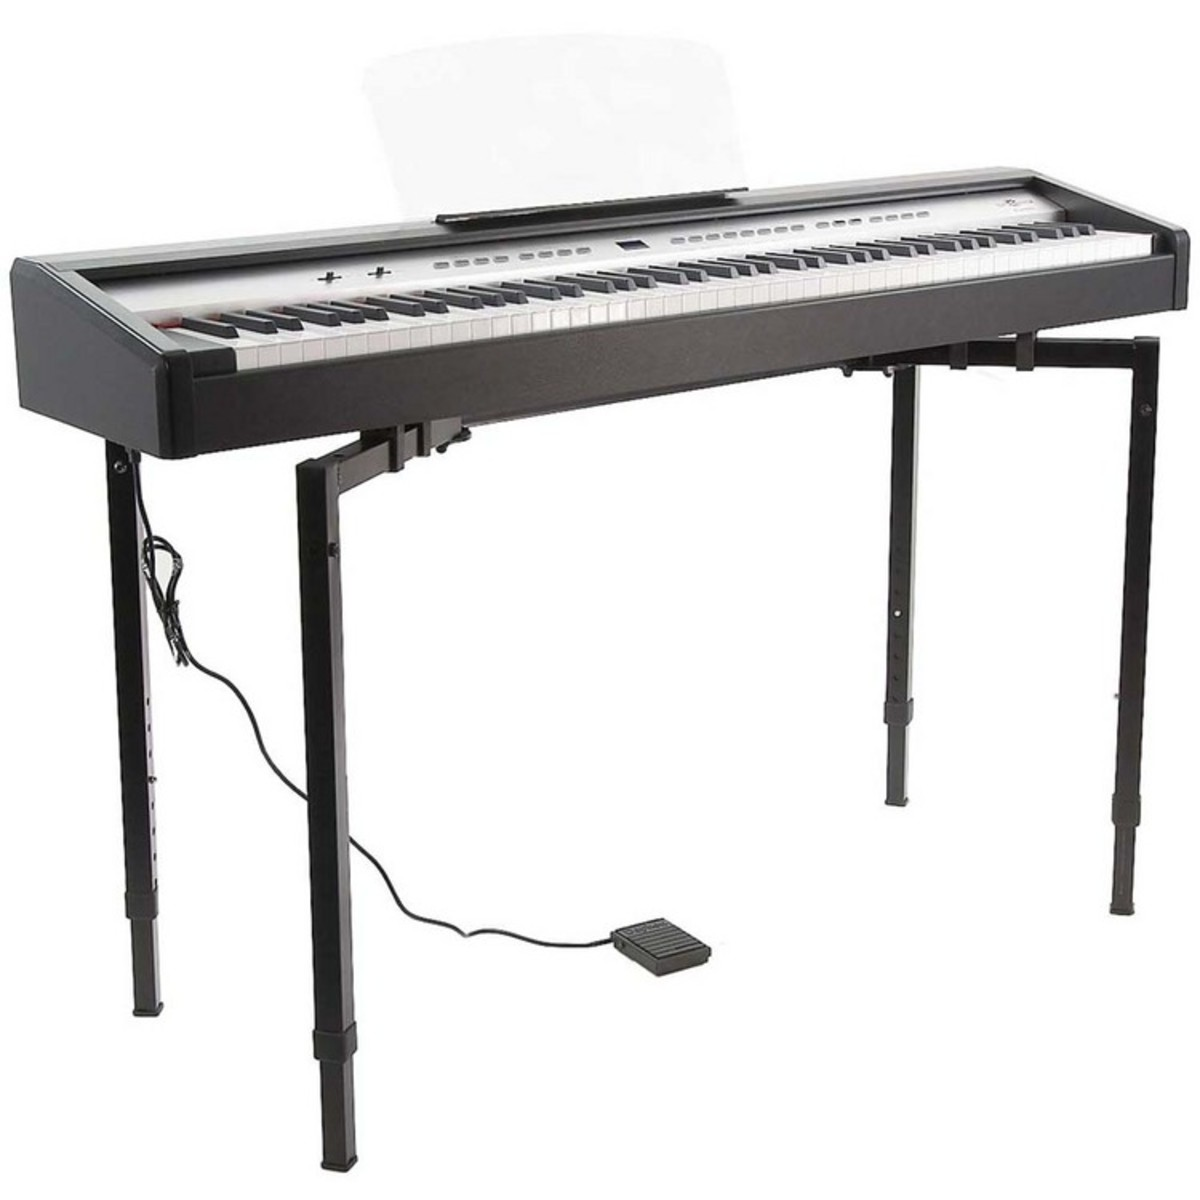 pl 650s digital stage piano keyboard stand at gear4music. Black Bedroom Furniture Sets. Home Design Ideas